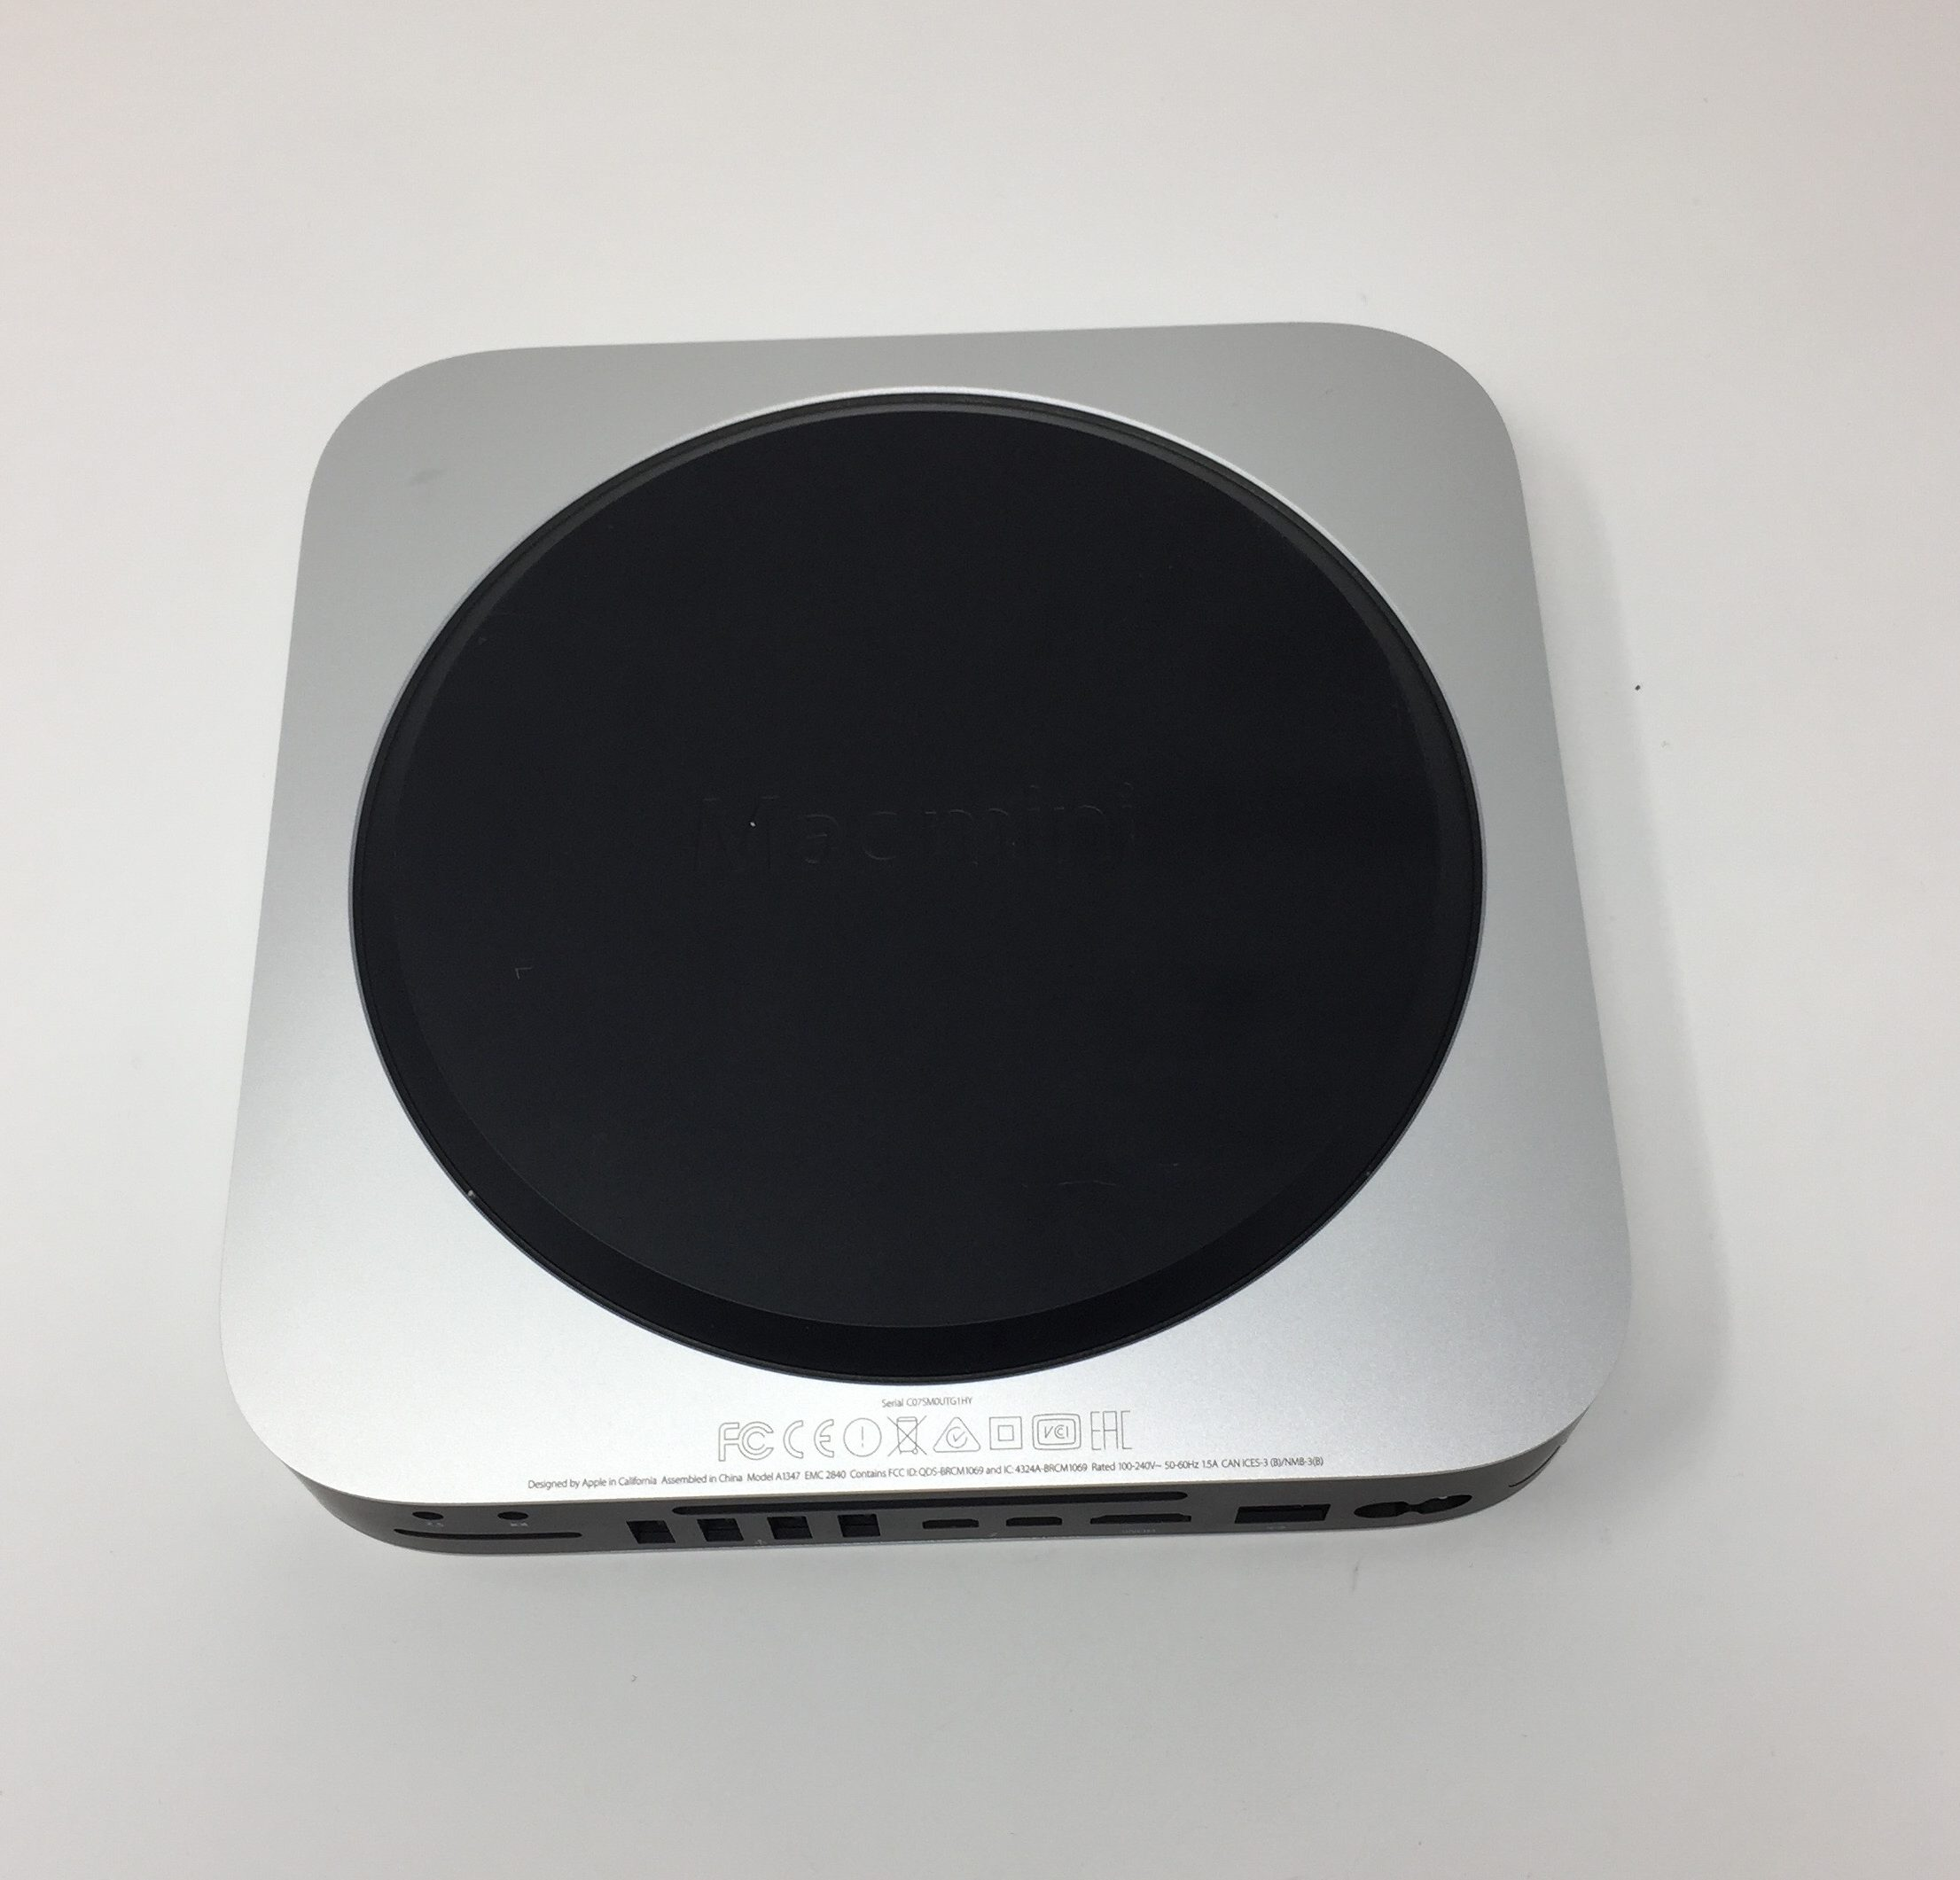 Mac Mini Late 2014 (Intel Core i5 2.8 GHz 8 GB RAM 512 GB SSD), INTEL CORE I5 2,8 GHZ, 8 GB 1600MHZ DDR3 , SSD 512 GB, imagen 2